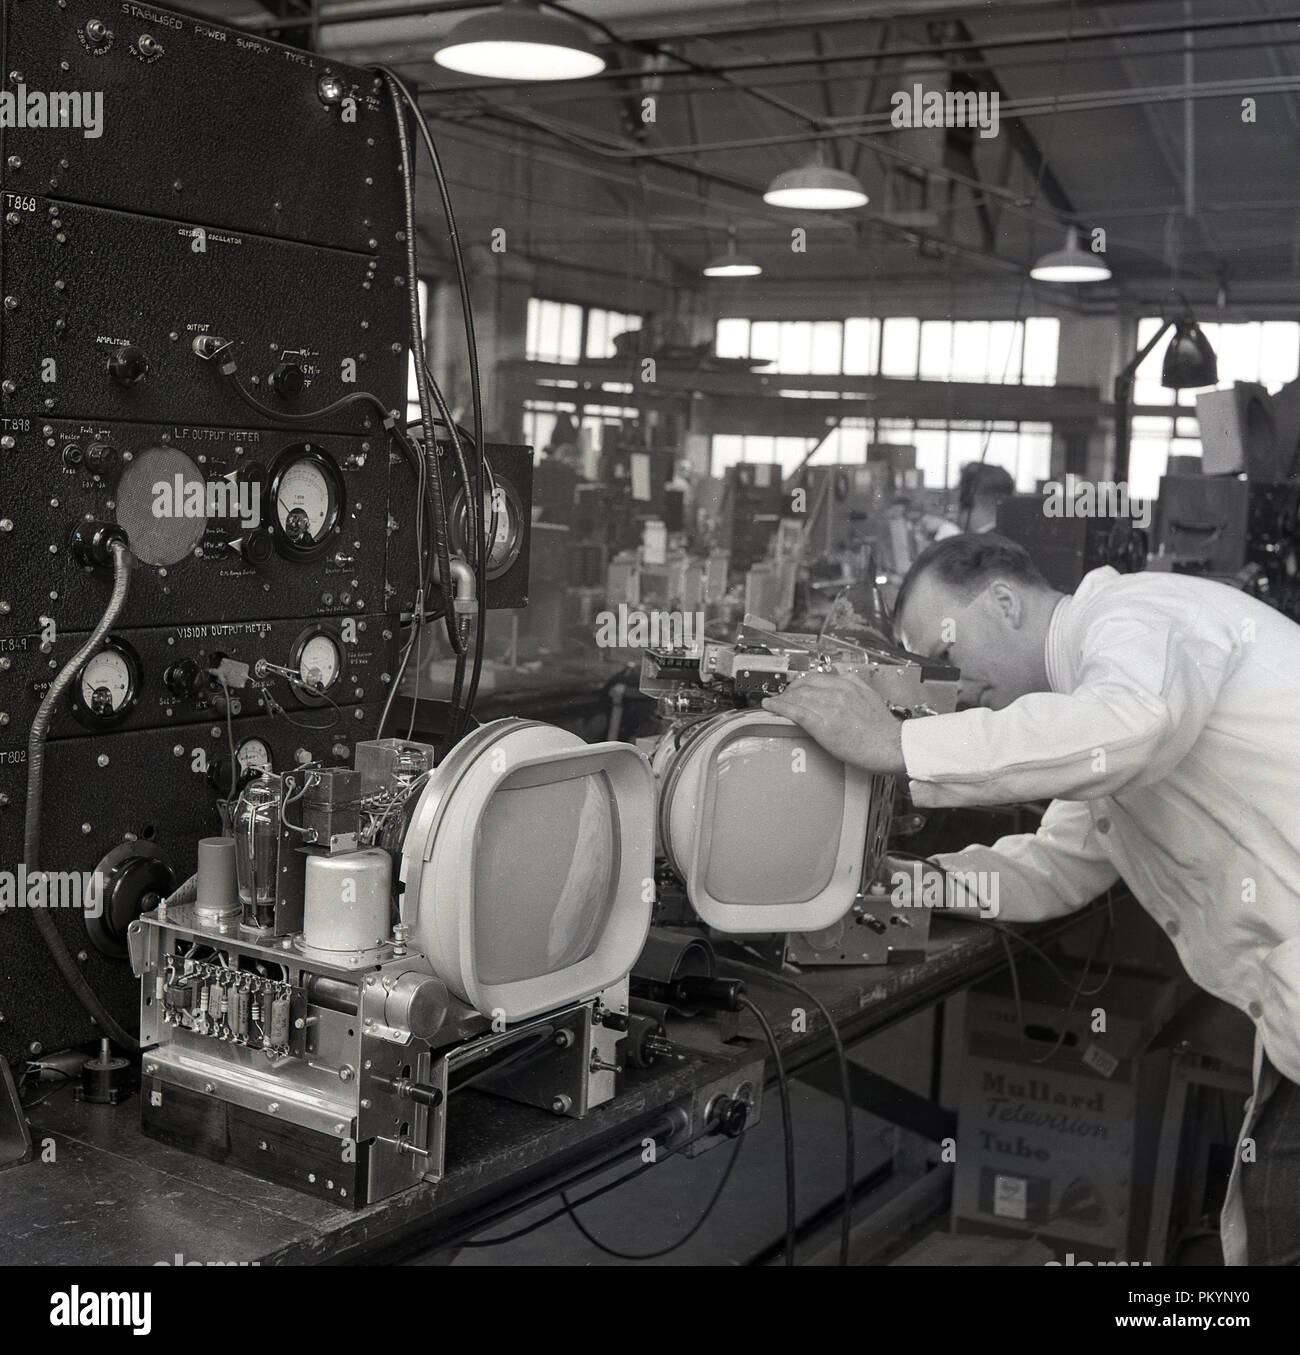 1950s, historical, white-coated male technician working on the components of television sets at the factory of Bush Radio, a leading british consumer electronics company in this era. - Stock Image